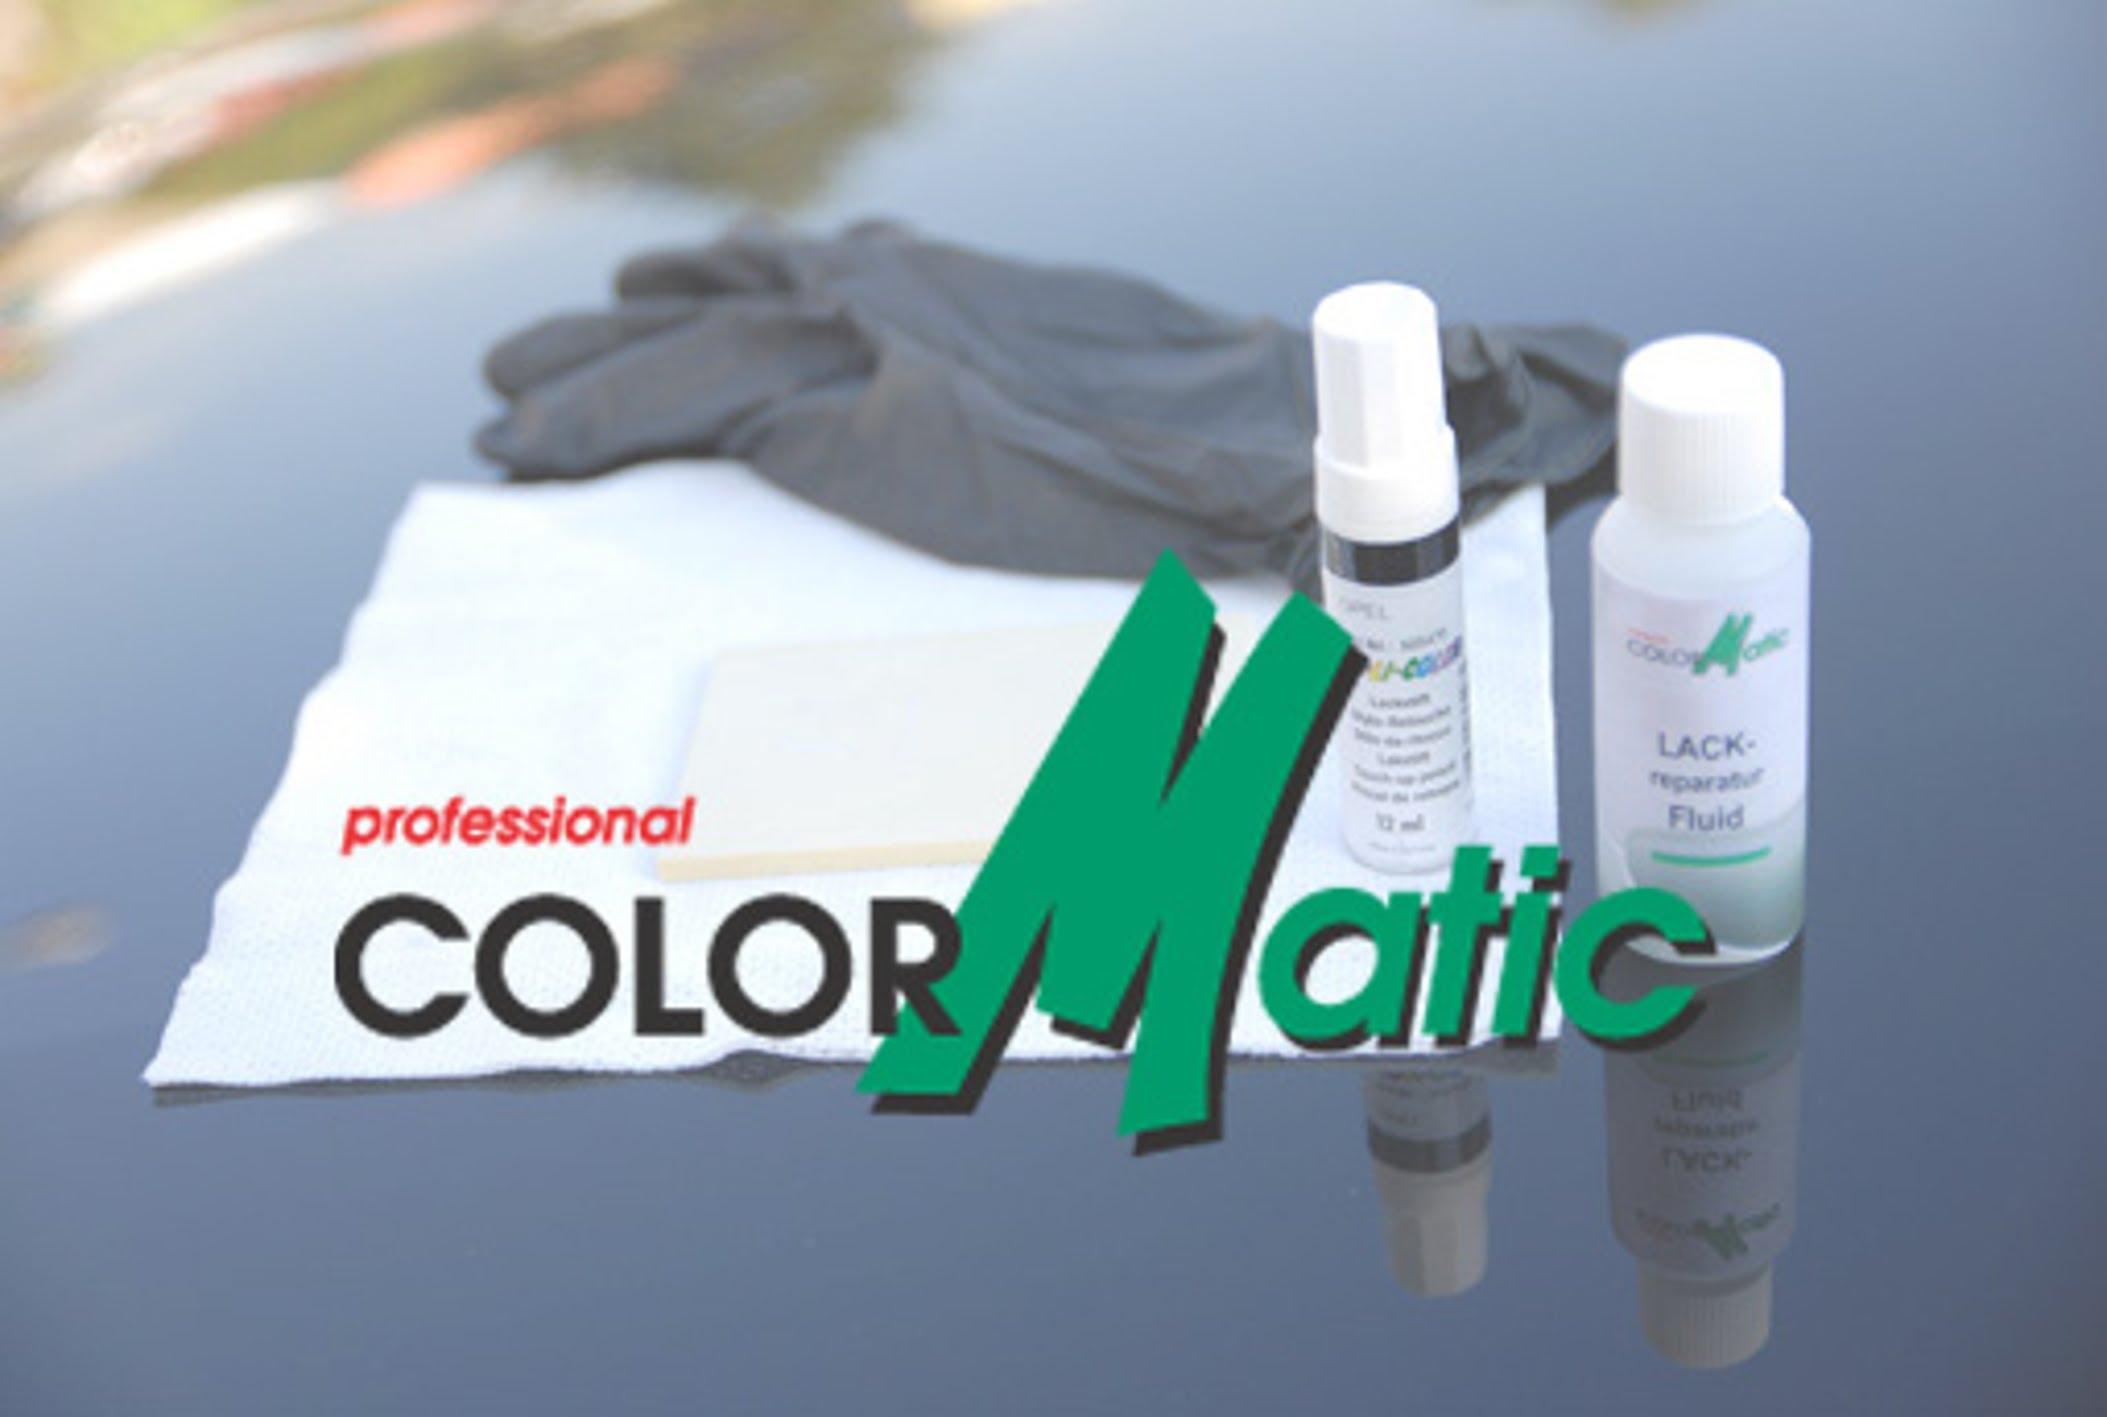 Colormatic Lackreparatur-Set